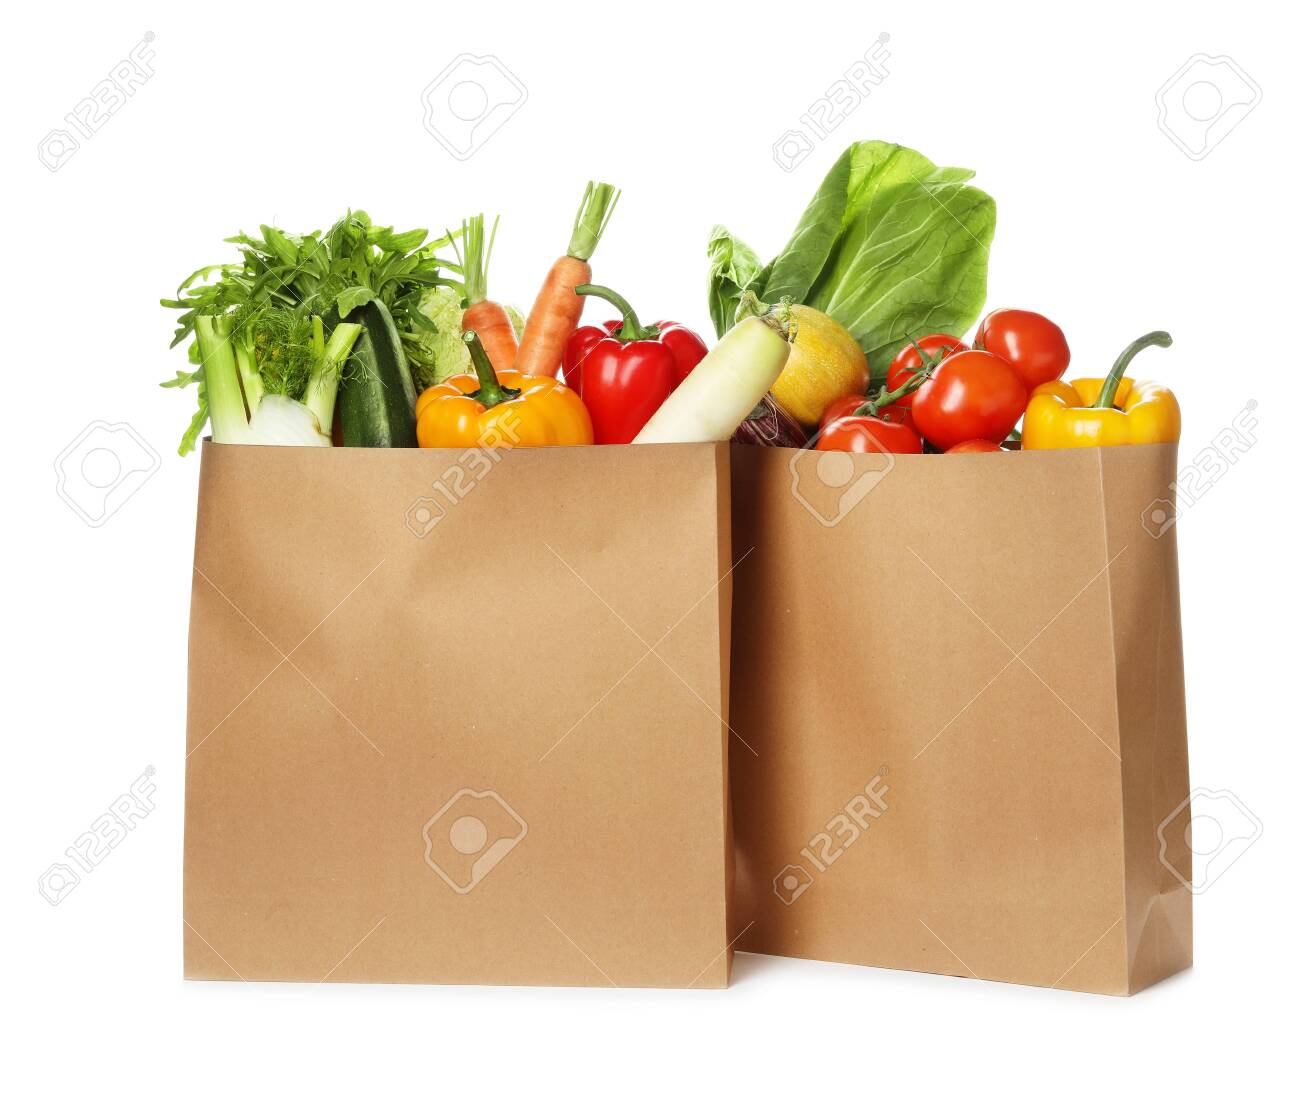 Paper bags with fresh vegetables on white background - 123316641